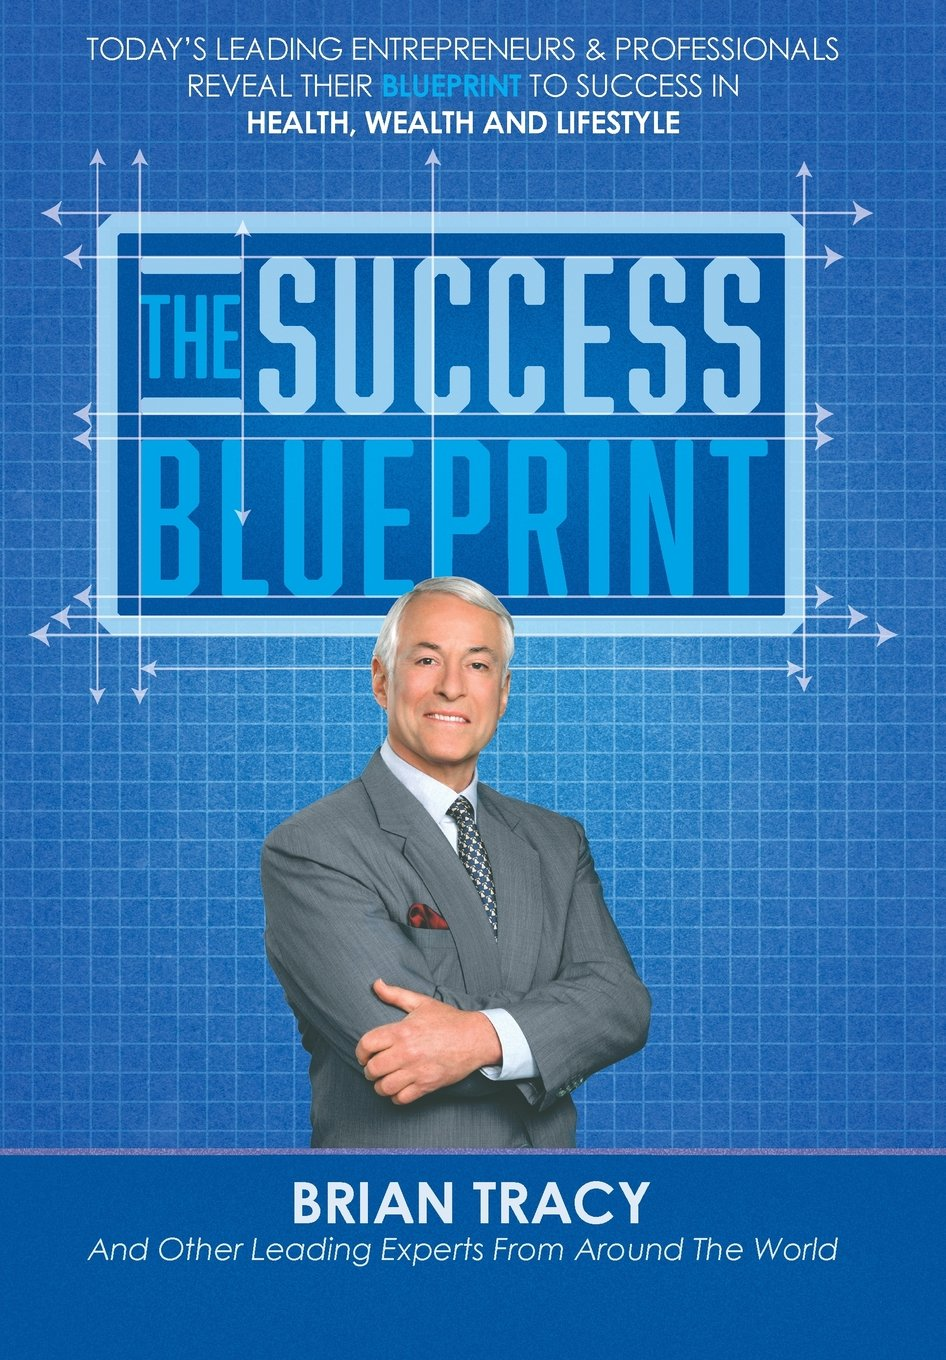 The success blueprint nick nanton jw dicks brian tracy malaika the success blueprint nick nanton jw dicks brian tracy malaika simmons bob roark louis stack 9780997536669 amazon books malvernweather Image collections